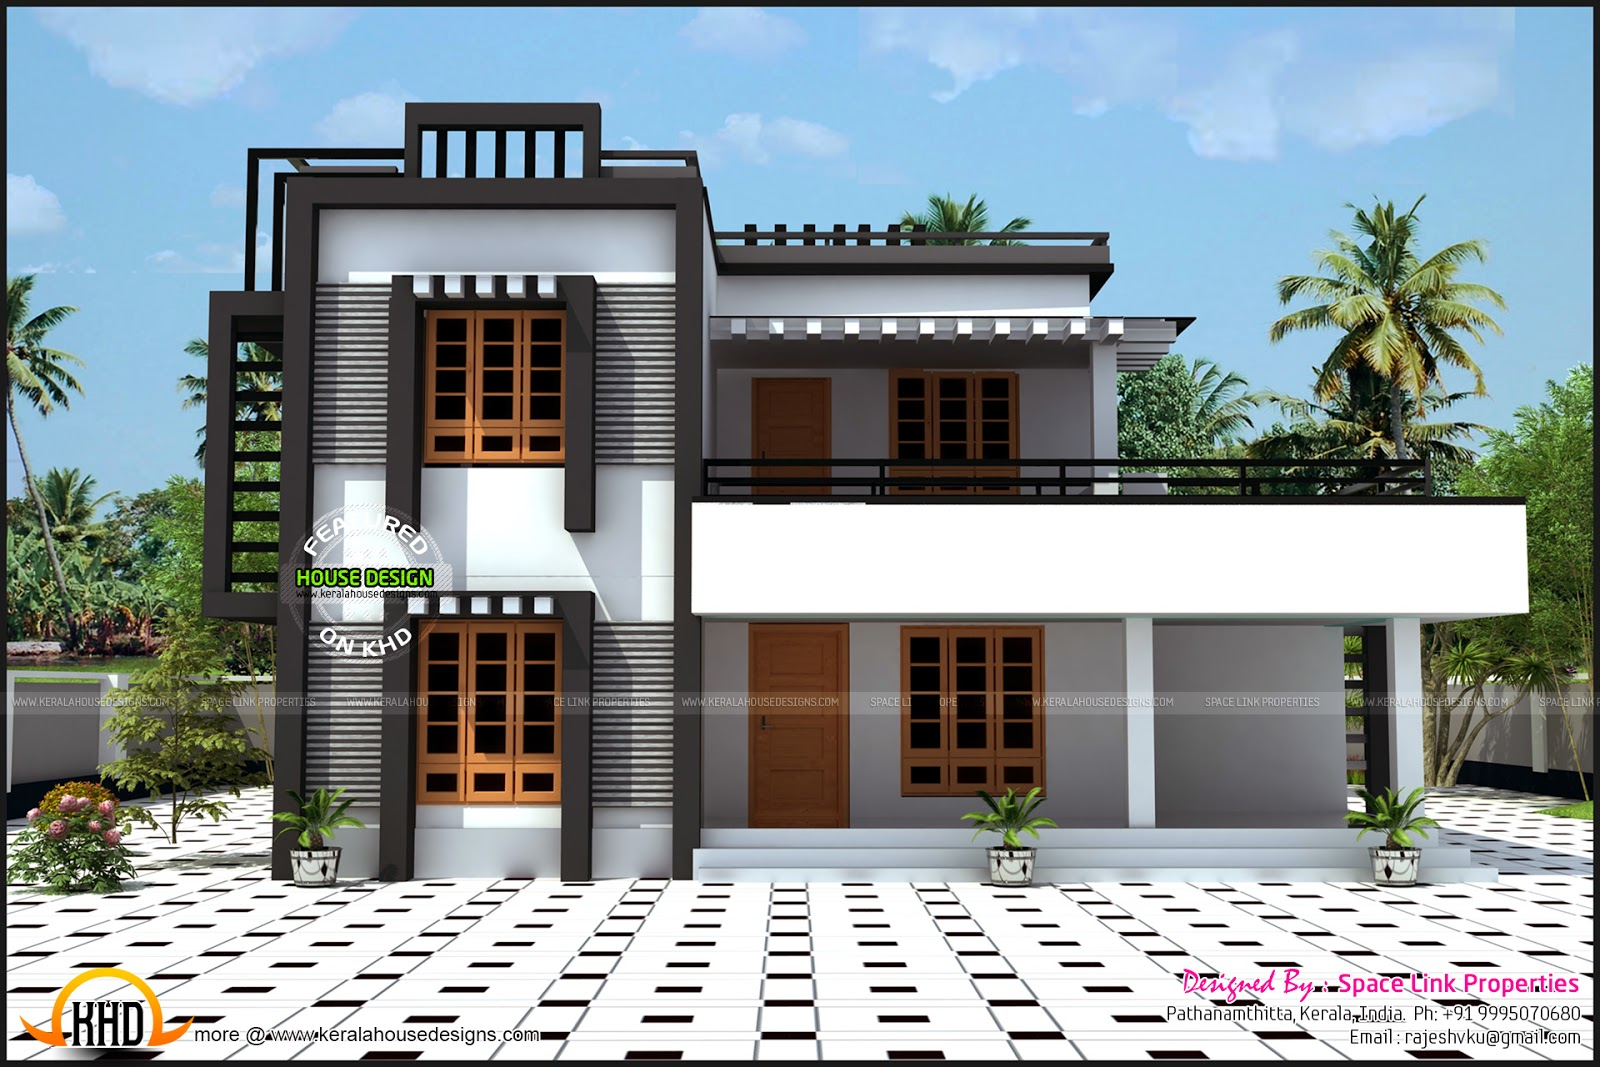 Garage Kits With Apartments July 2015 Kerala Home Design And Floor Plans